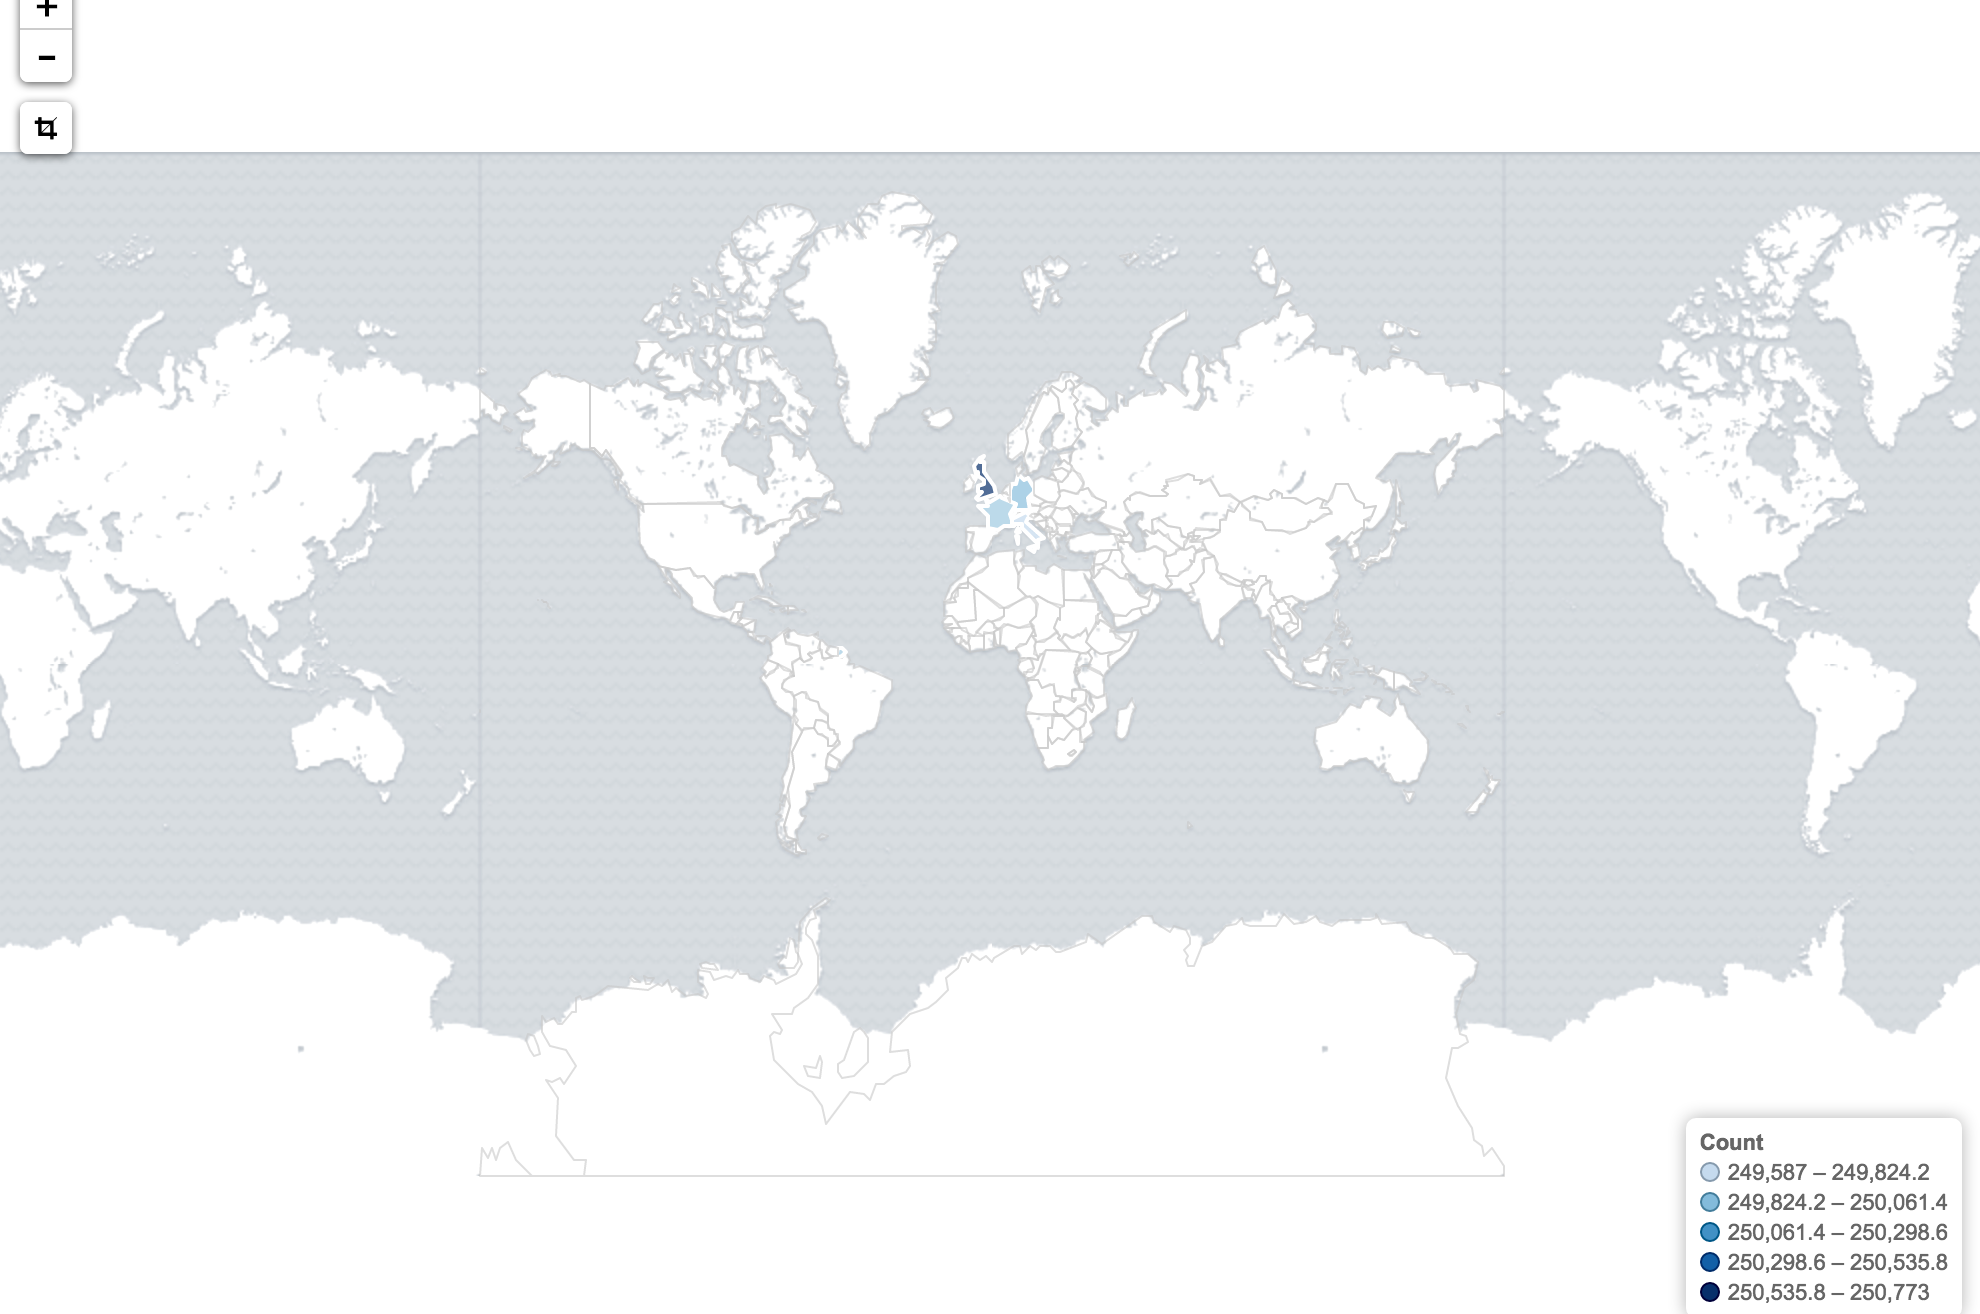 Autozoom on Region Map does not zoom to existing data · Issue #12220 on tectonic map of the world, pdf map of the world, bright map of the world, interactive map of the world, rotatable map of the world, zoom map of the world, google map of the world, titled map of the world, searchable map of the world, glacial map of the world,